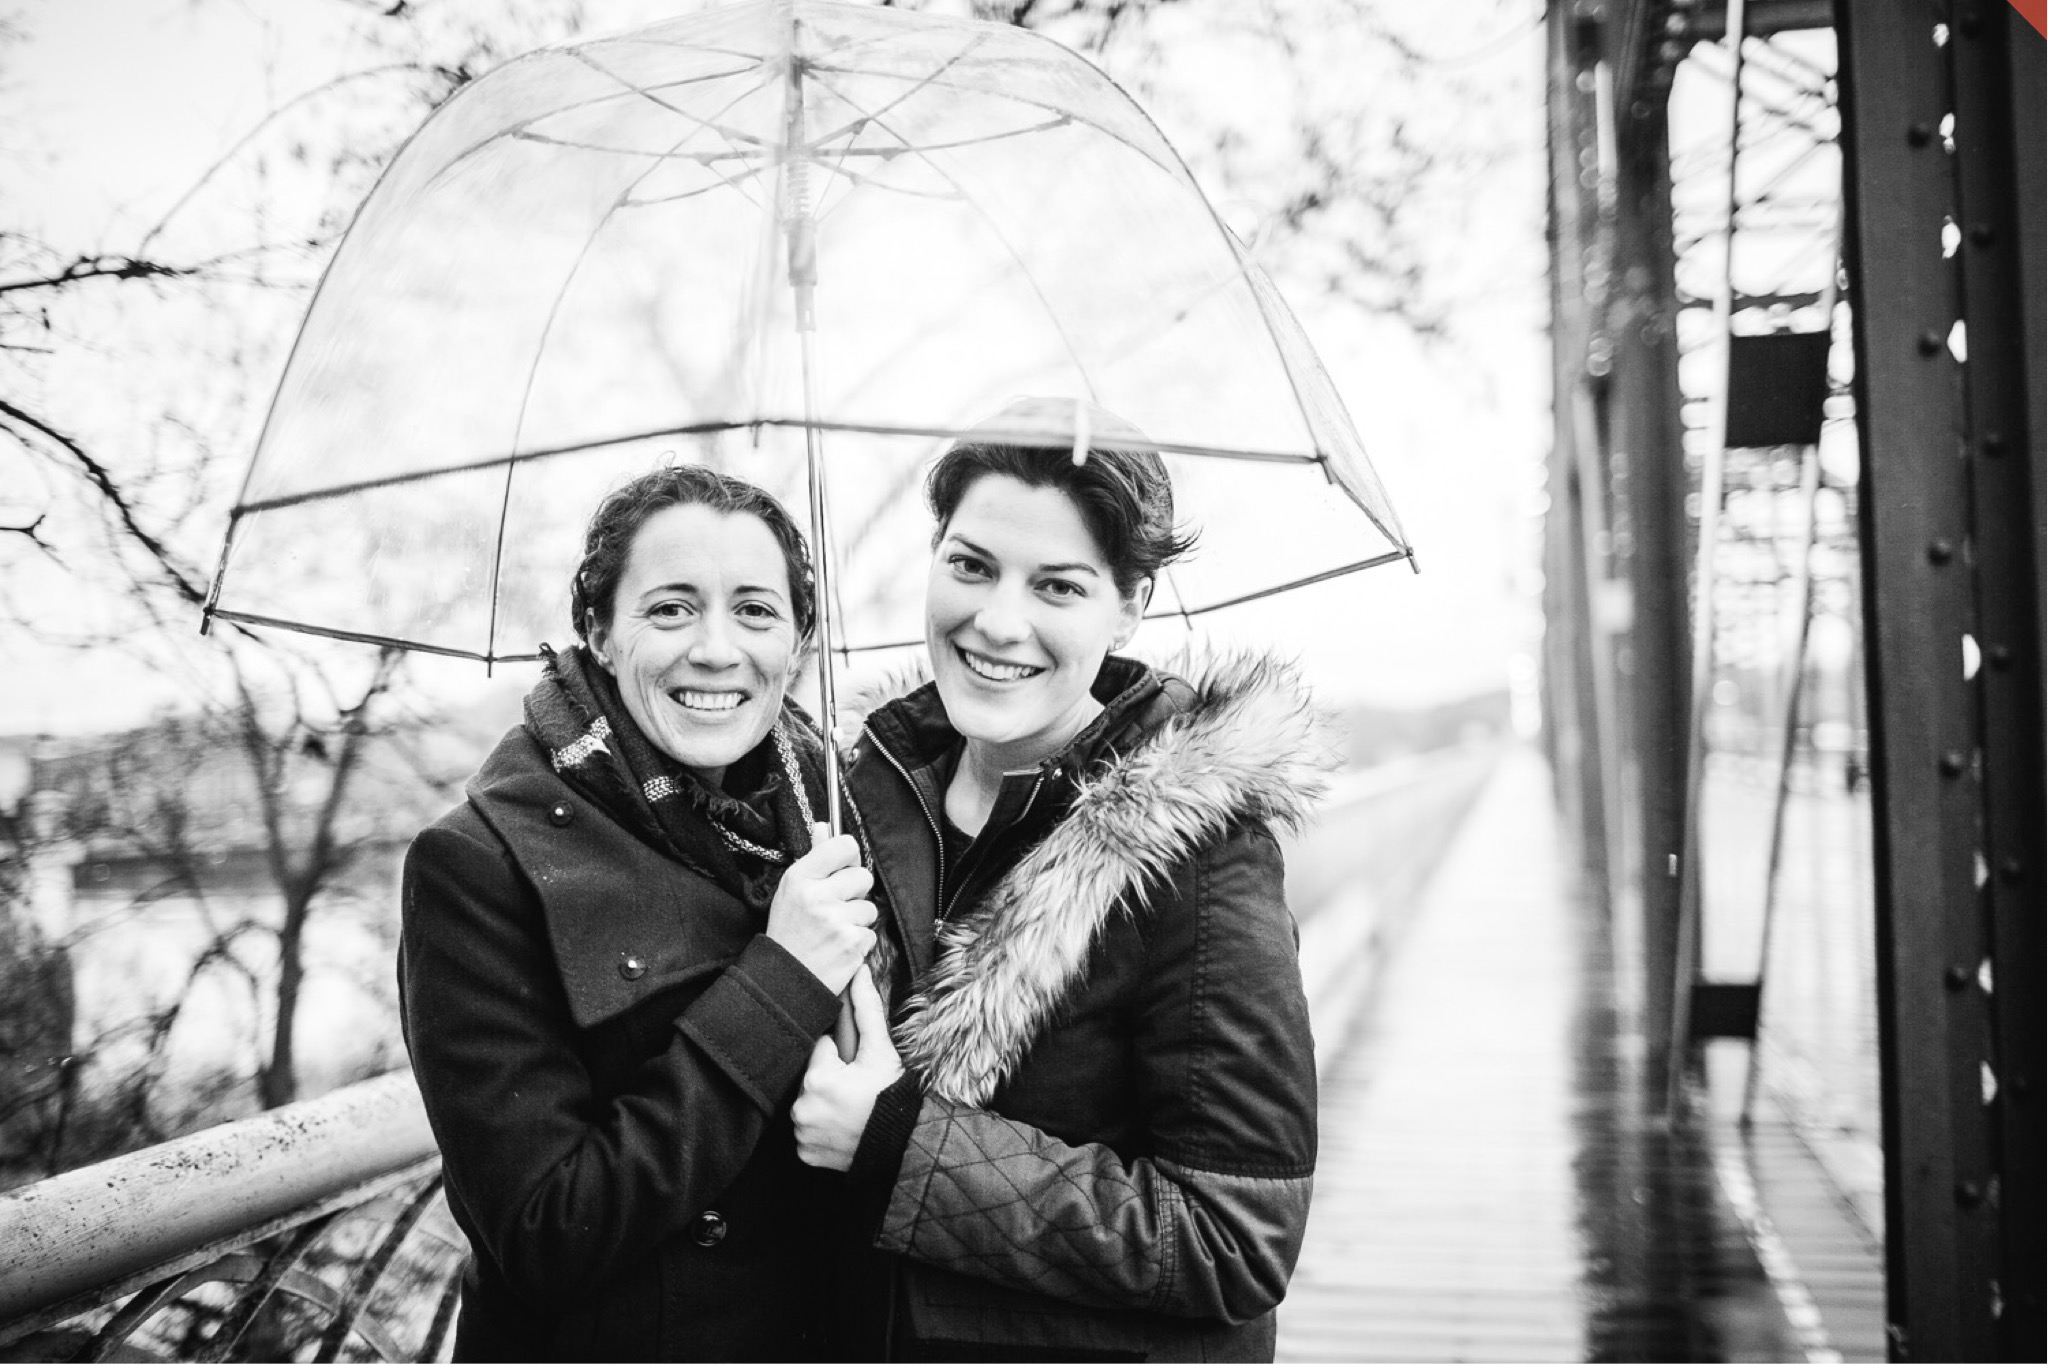 A lesbian couple poses underneath a transparent umbrella in the rain.